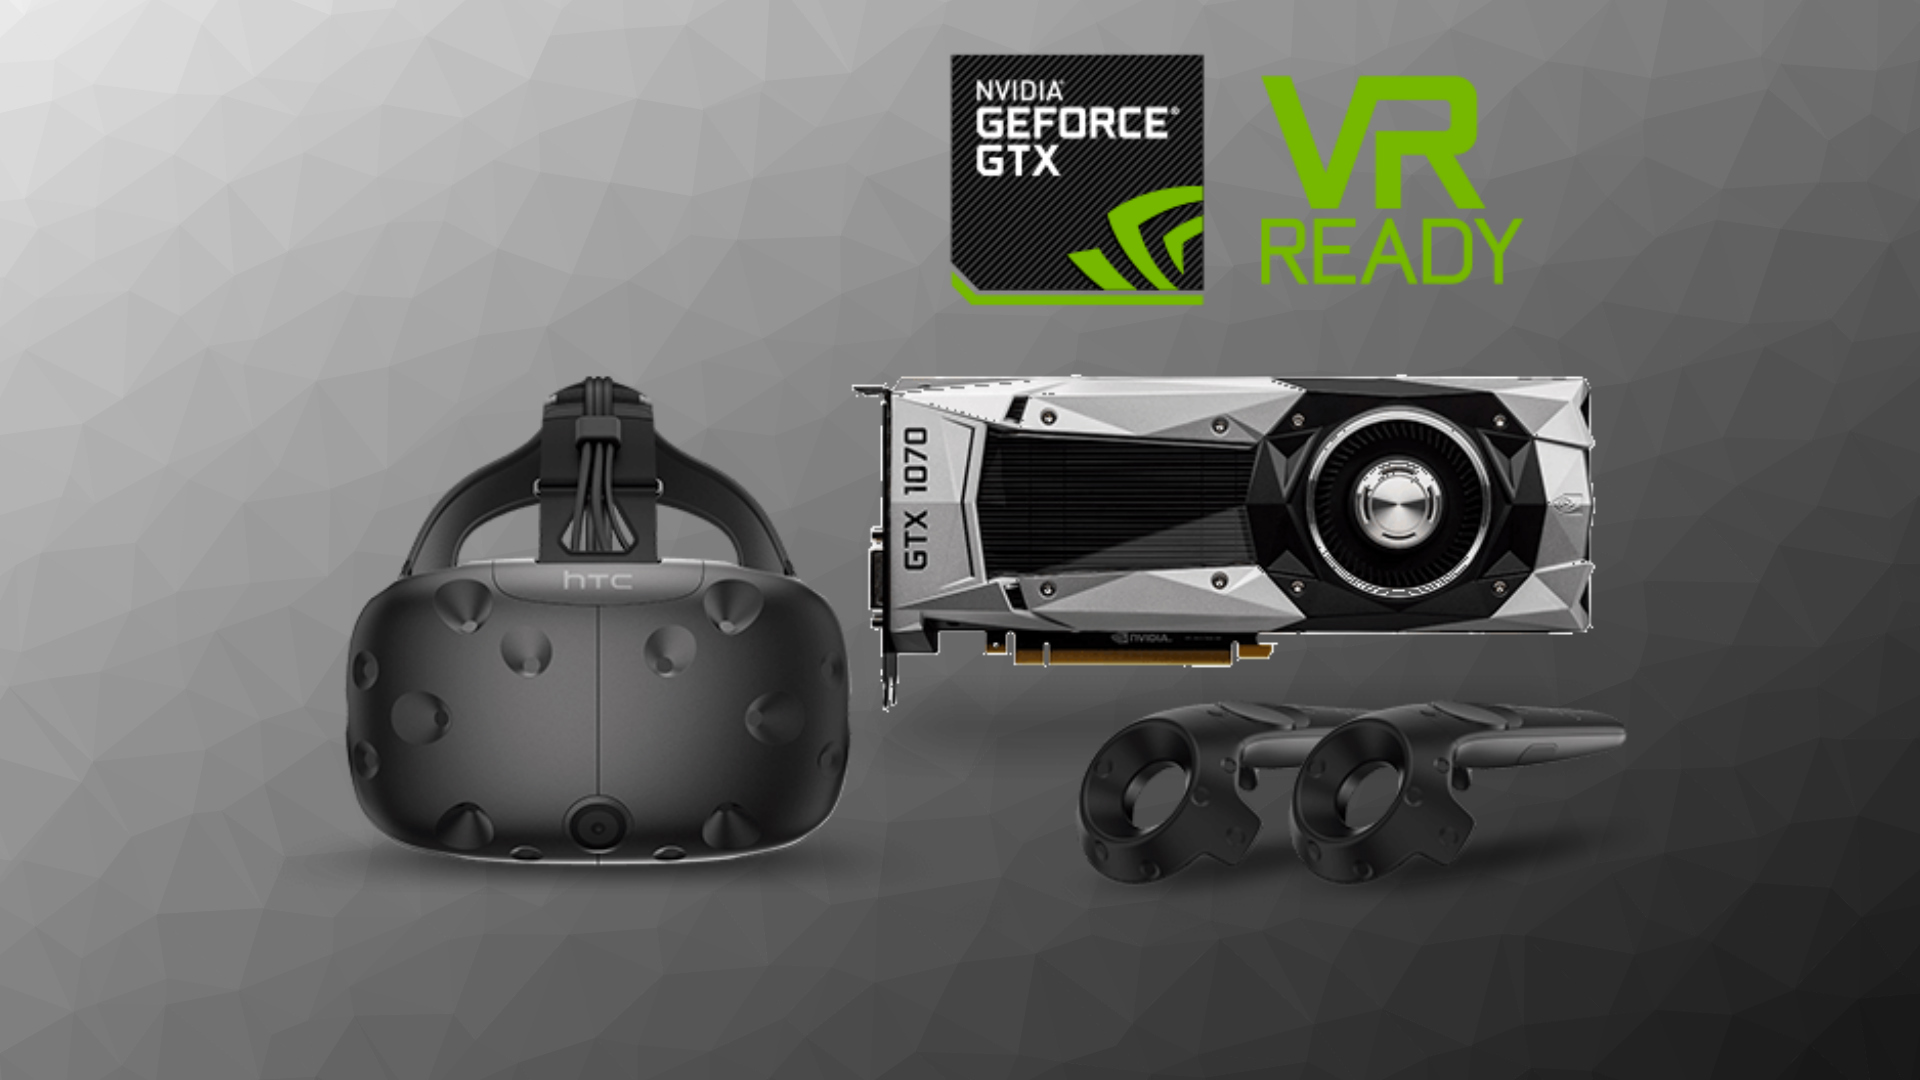 HTC Vive + GTX 1070 Founders Edition Bundle is Back for $800, Including Free 'Fallout 4 VR'